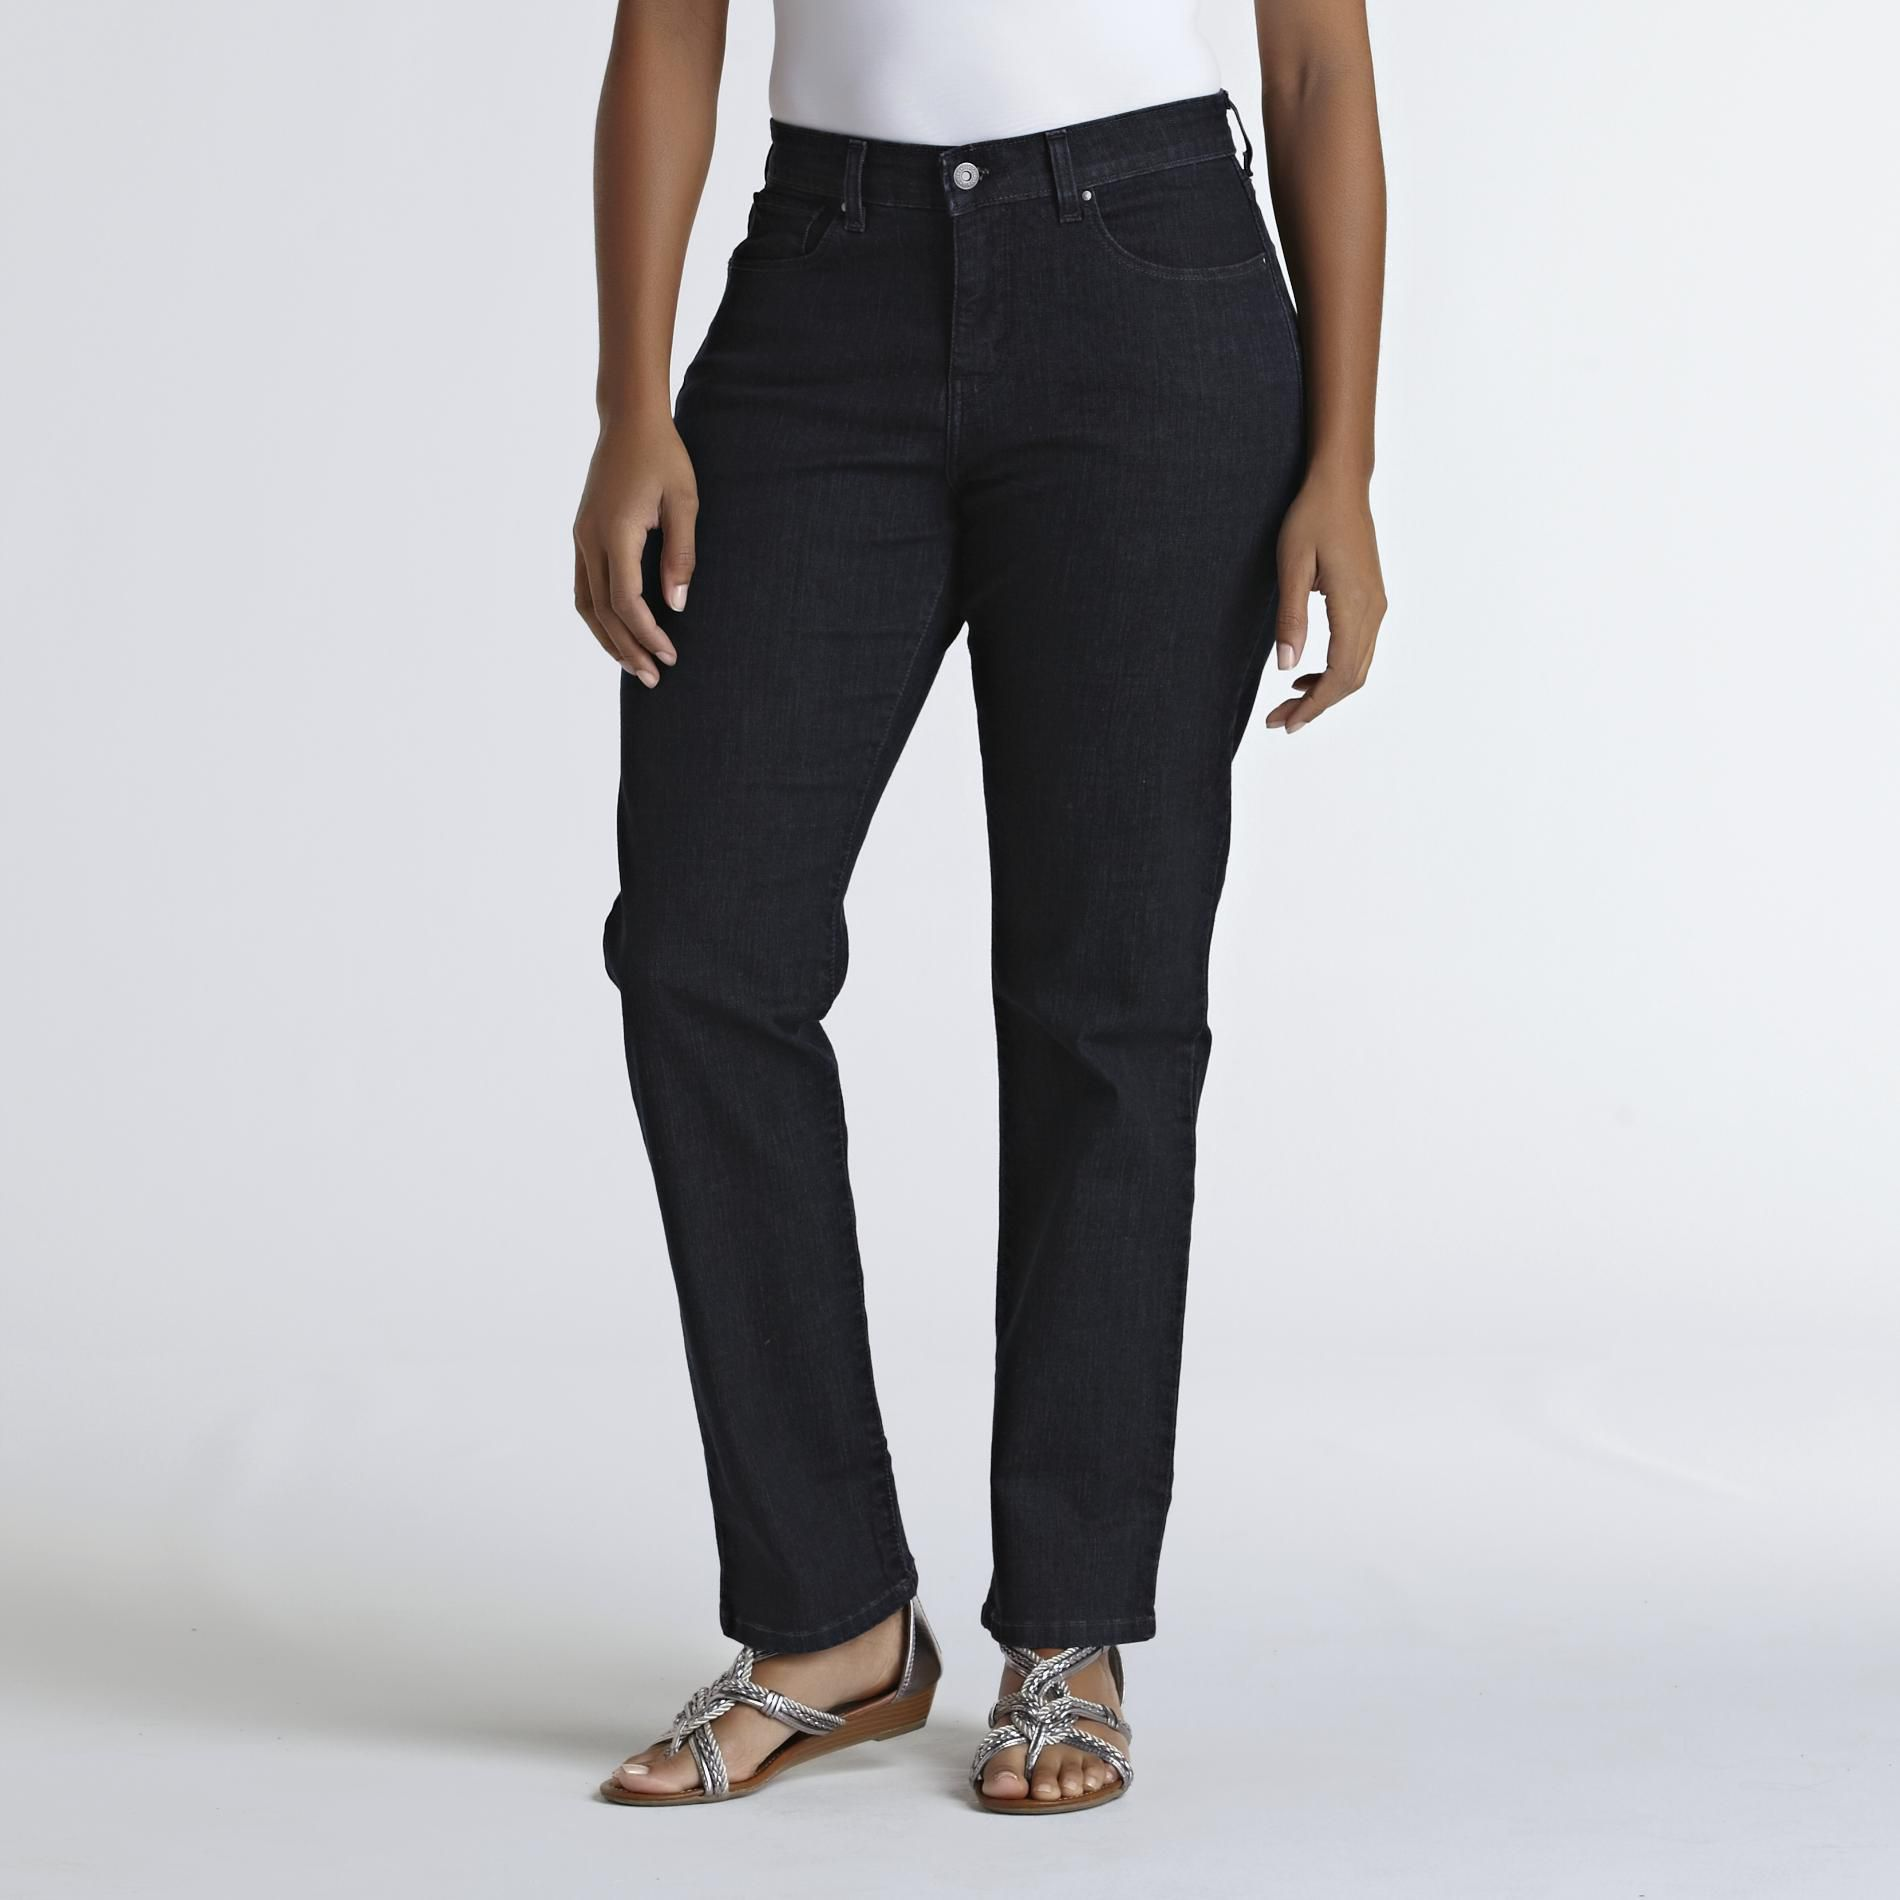 Levi's 512 Slim Fit Denim for Women's Plus at Sears.com